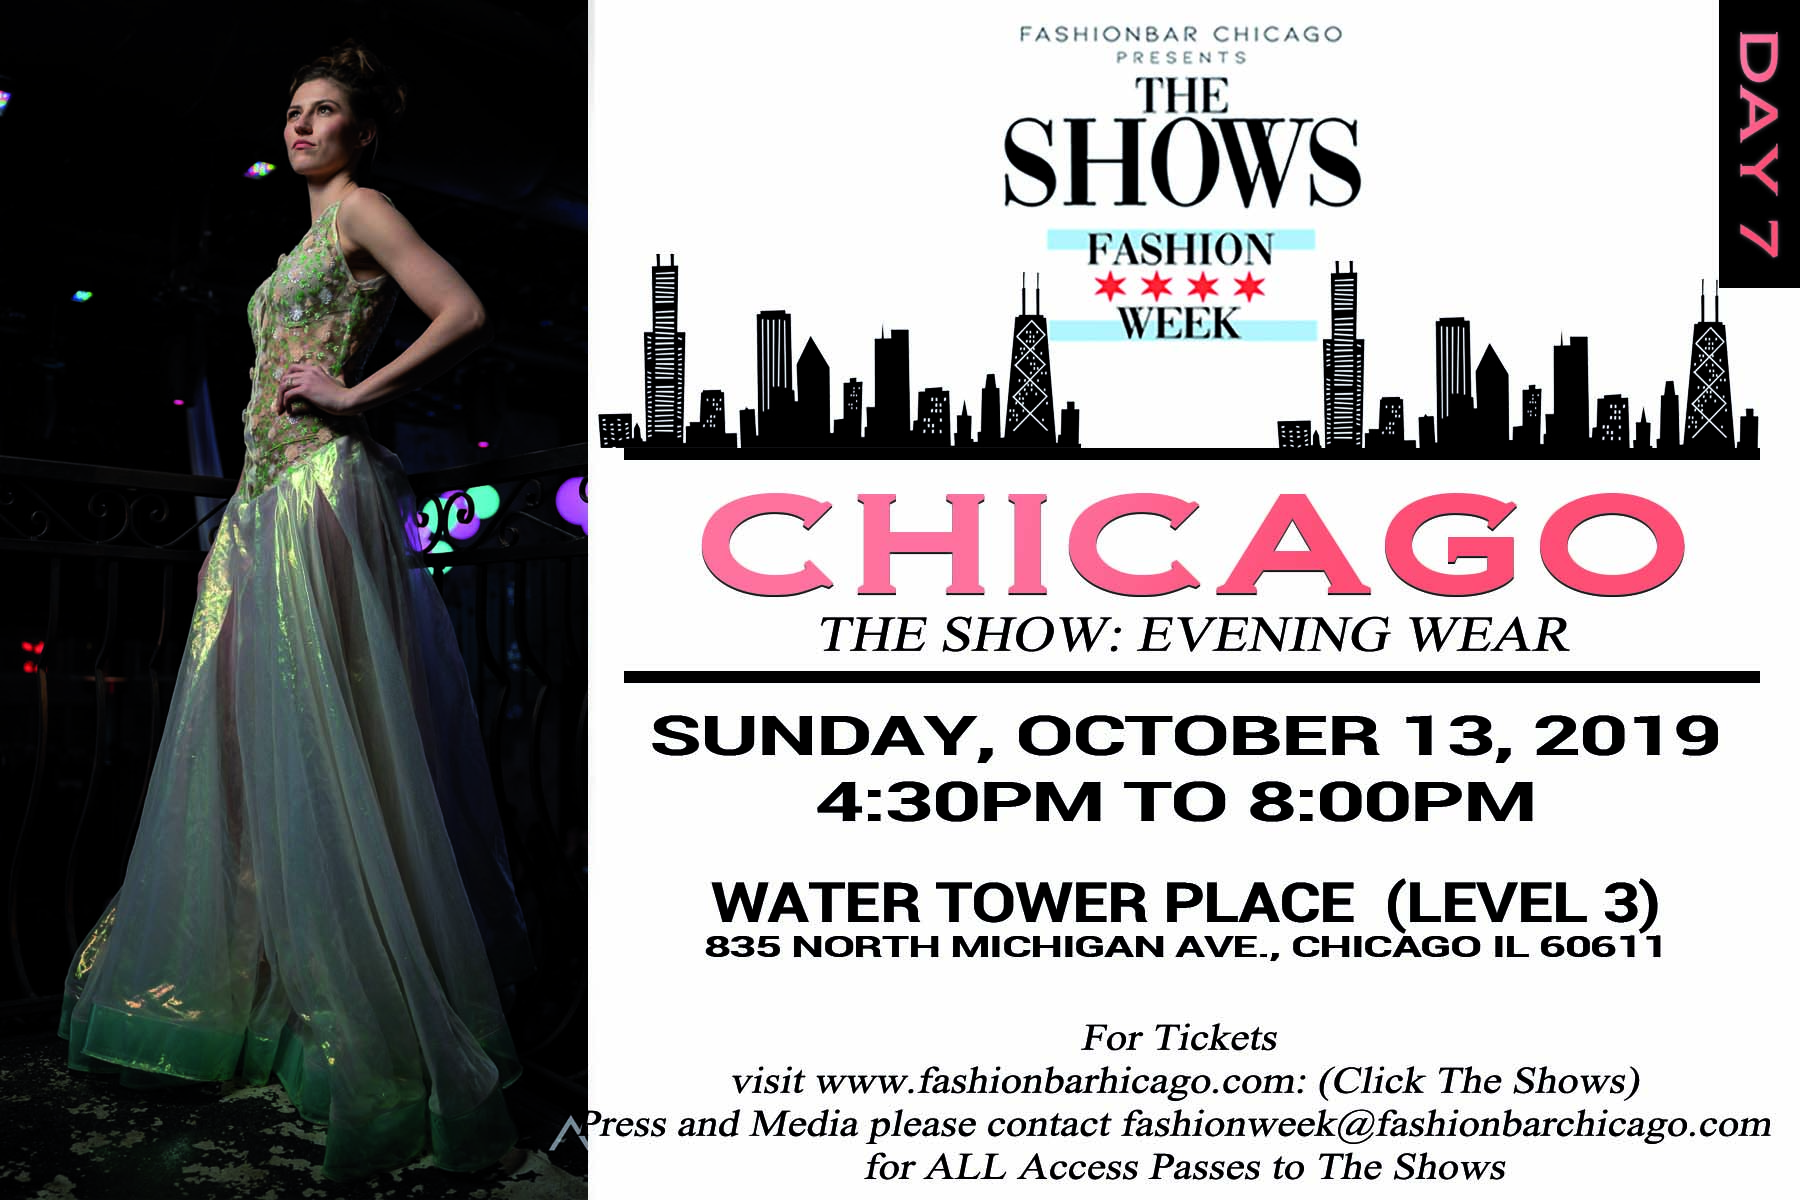 The Shows Fashion Week